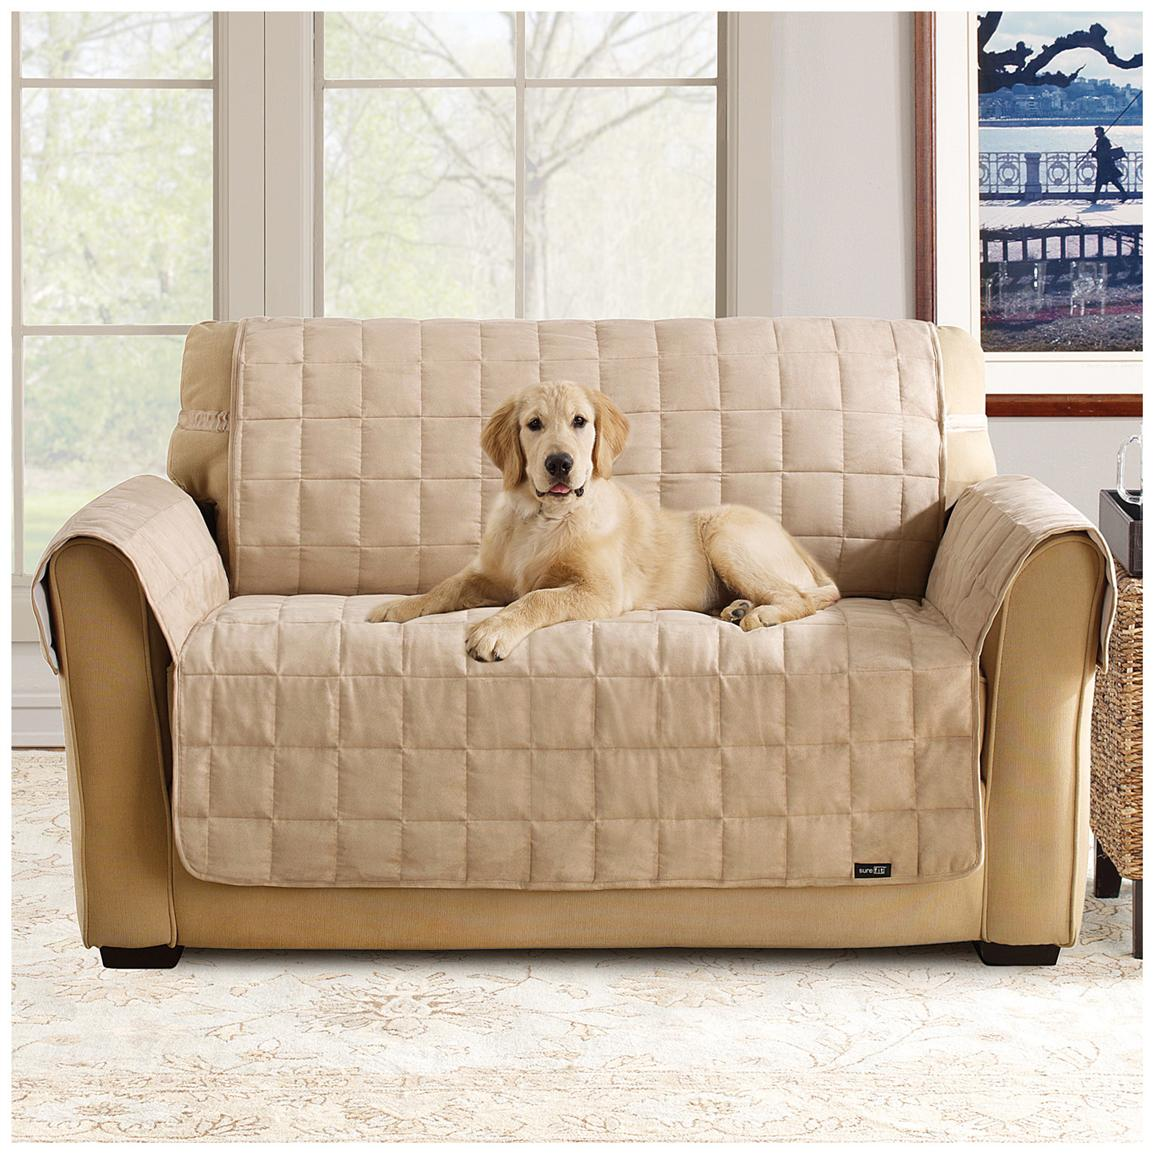 Waterproof Quilted Suede Sofa Pet Cover, Taupe, Loveseat version shown